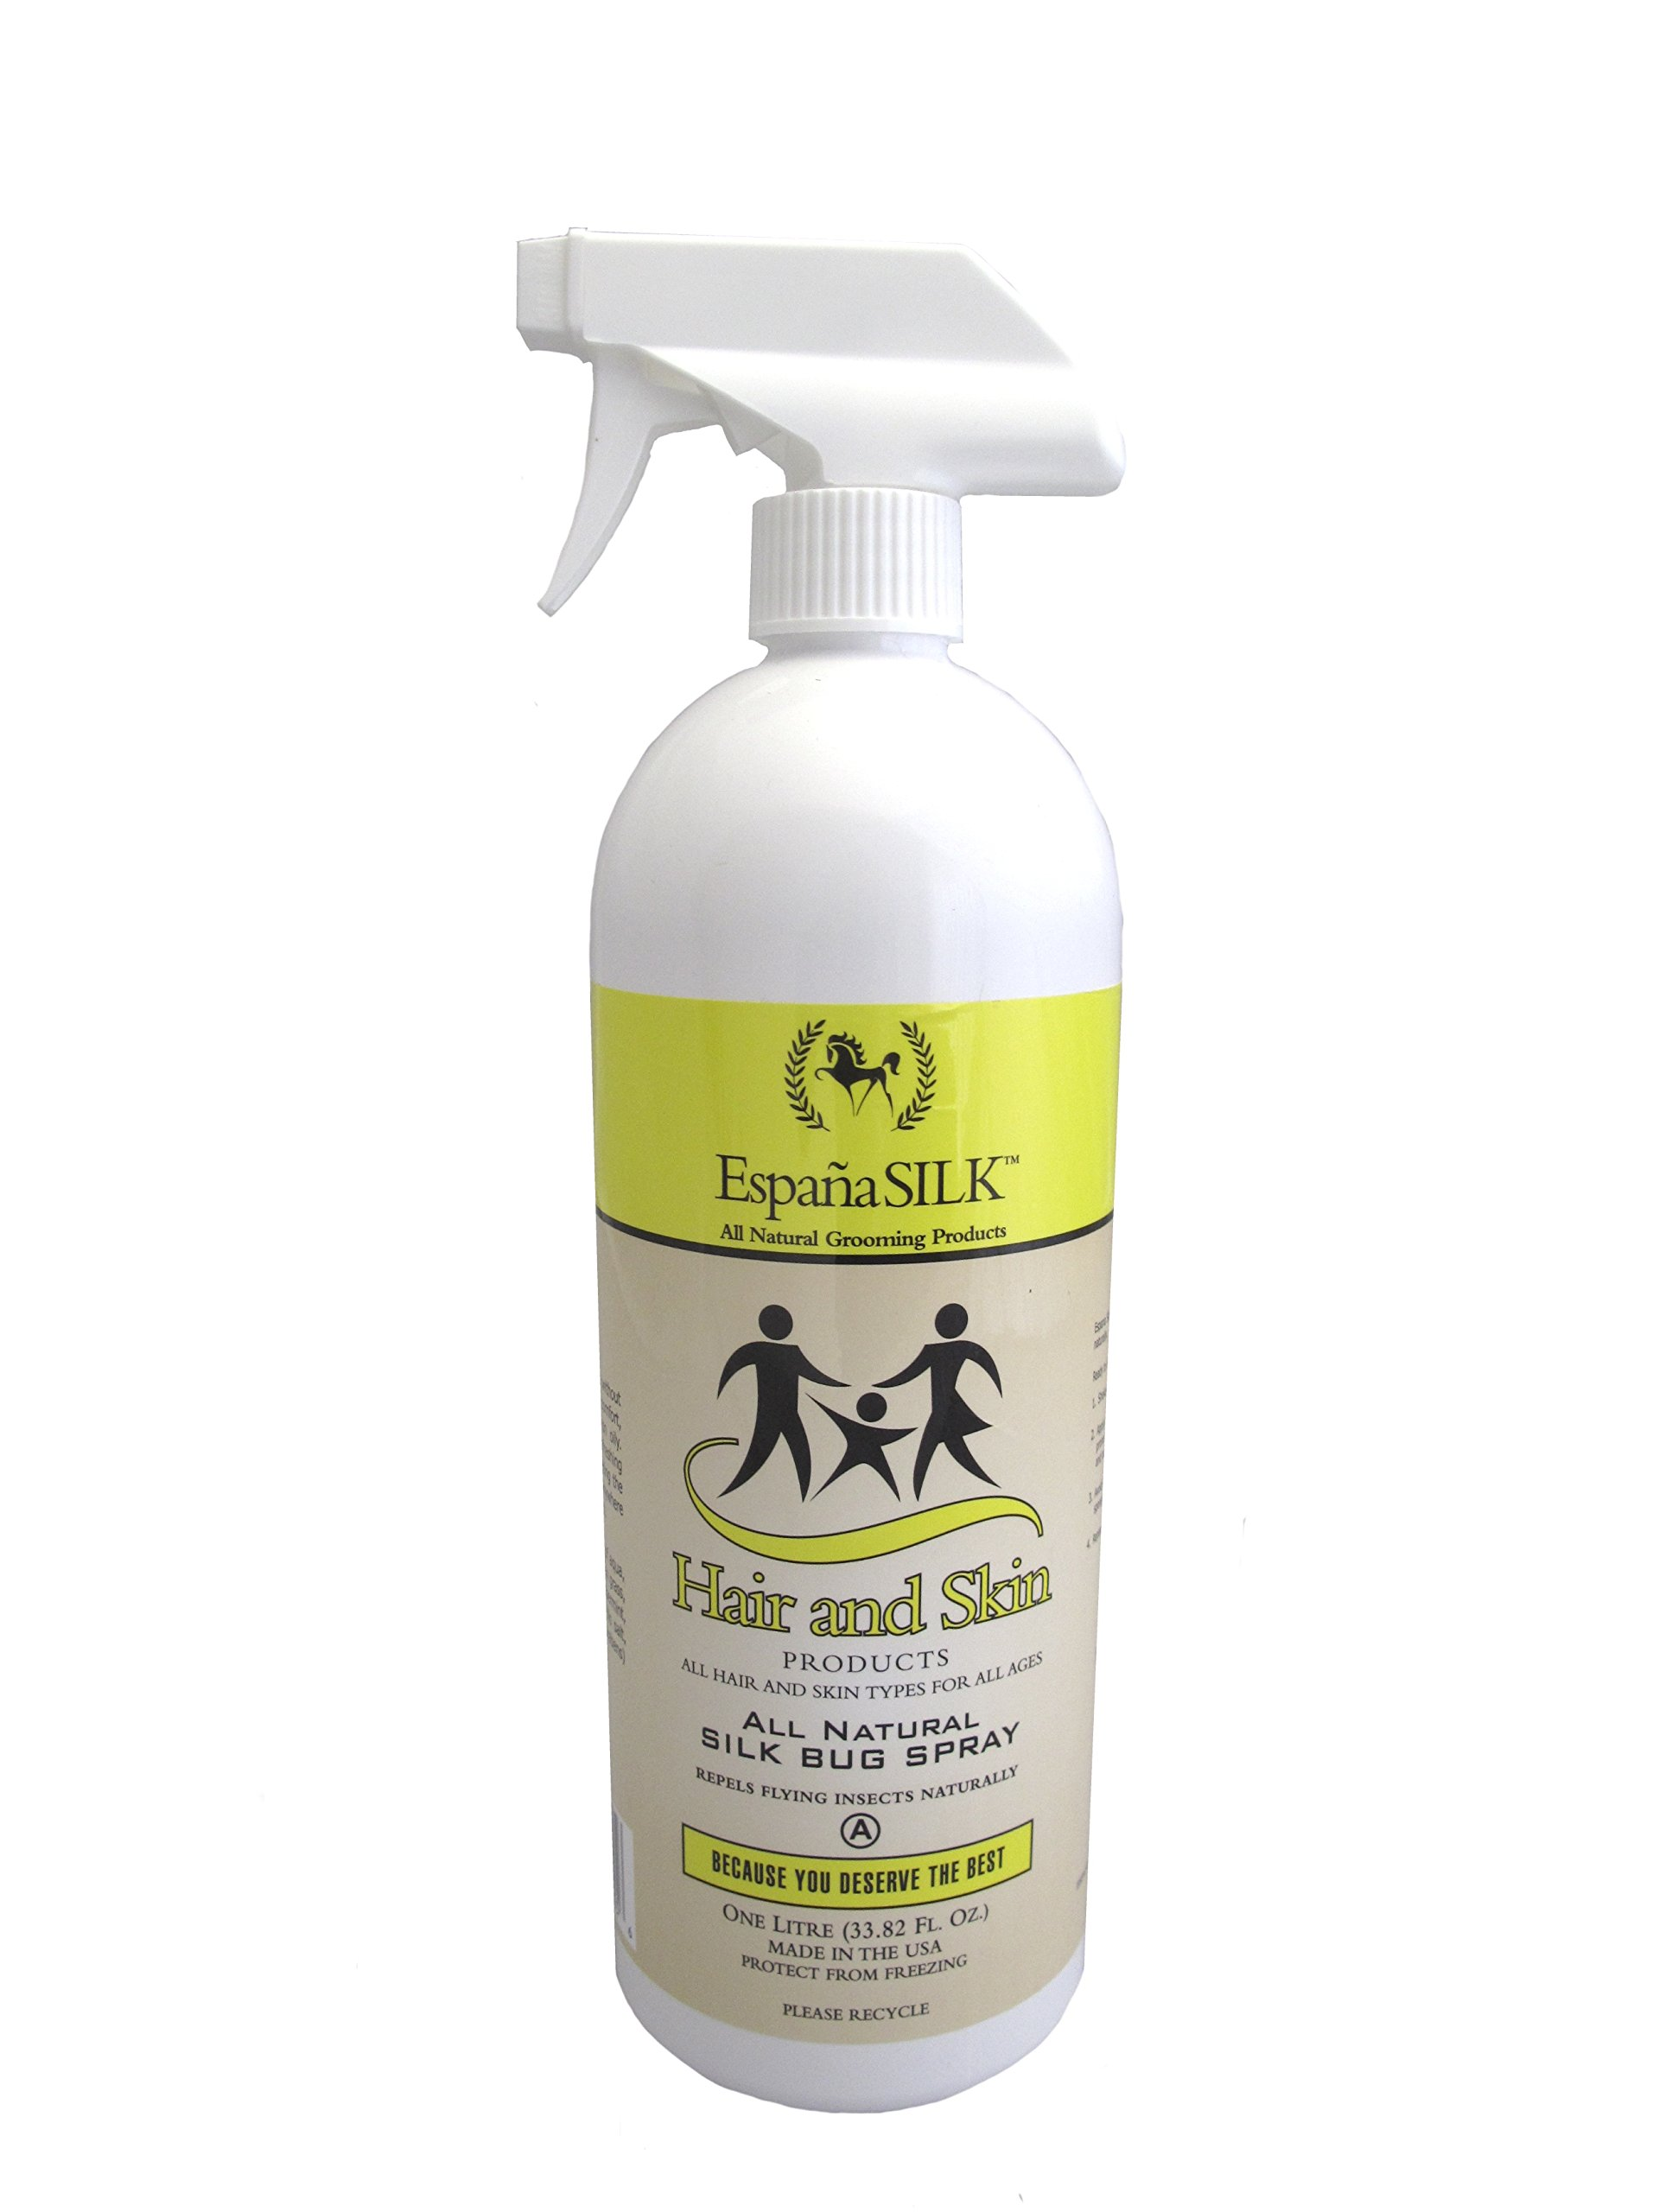 Espana Silk ESP2220P 33.82 oz Protein Natural Bug Spray, 1 L